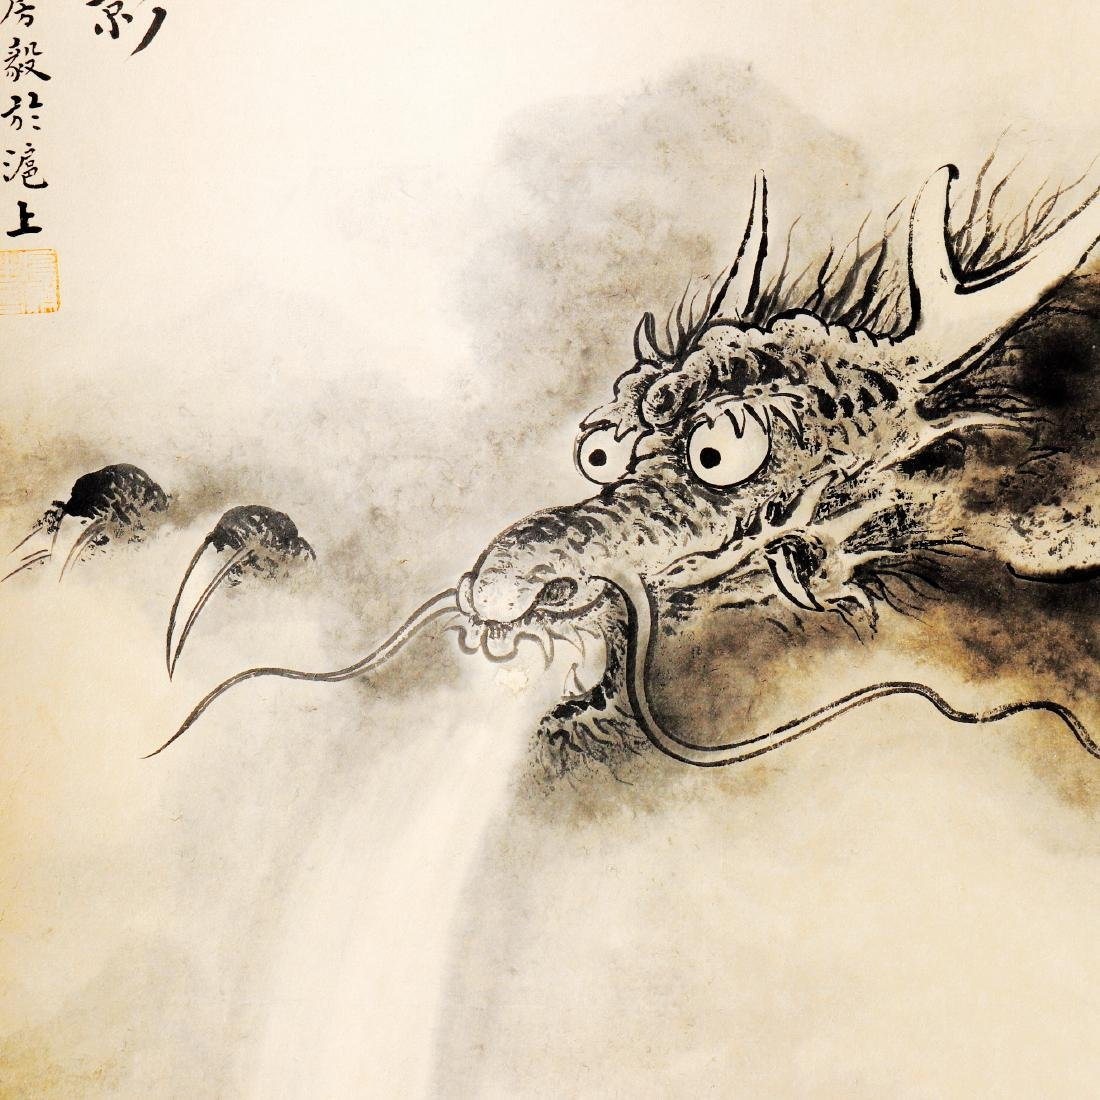 Attributed to fang yi (Chinese Scroll Painting)